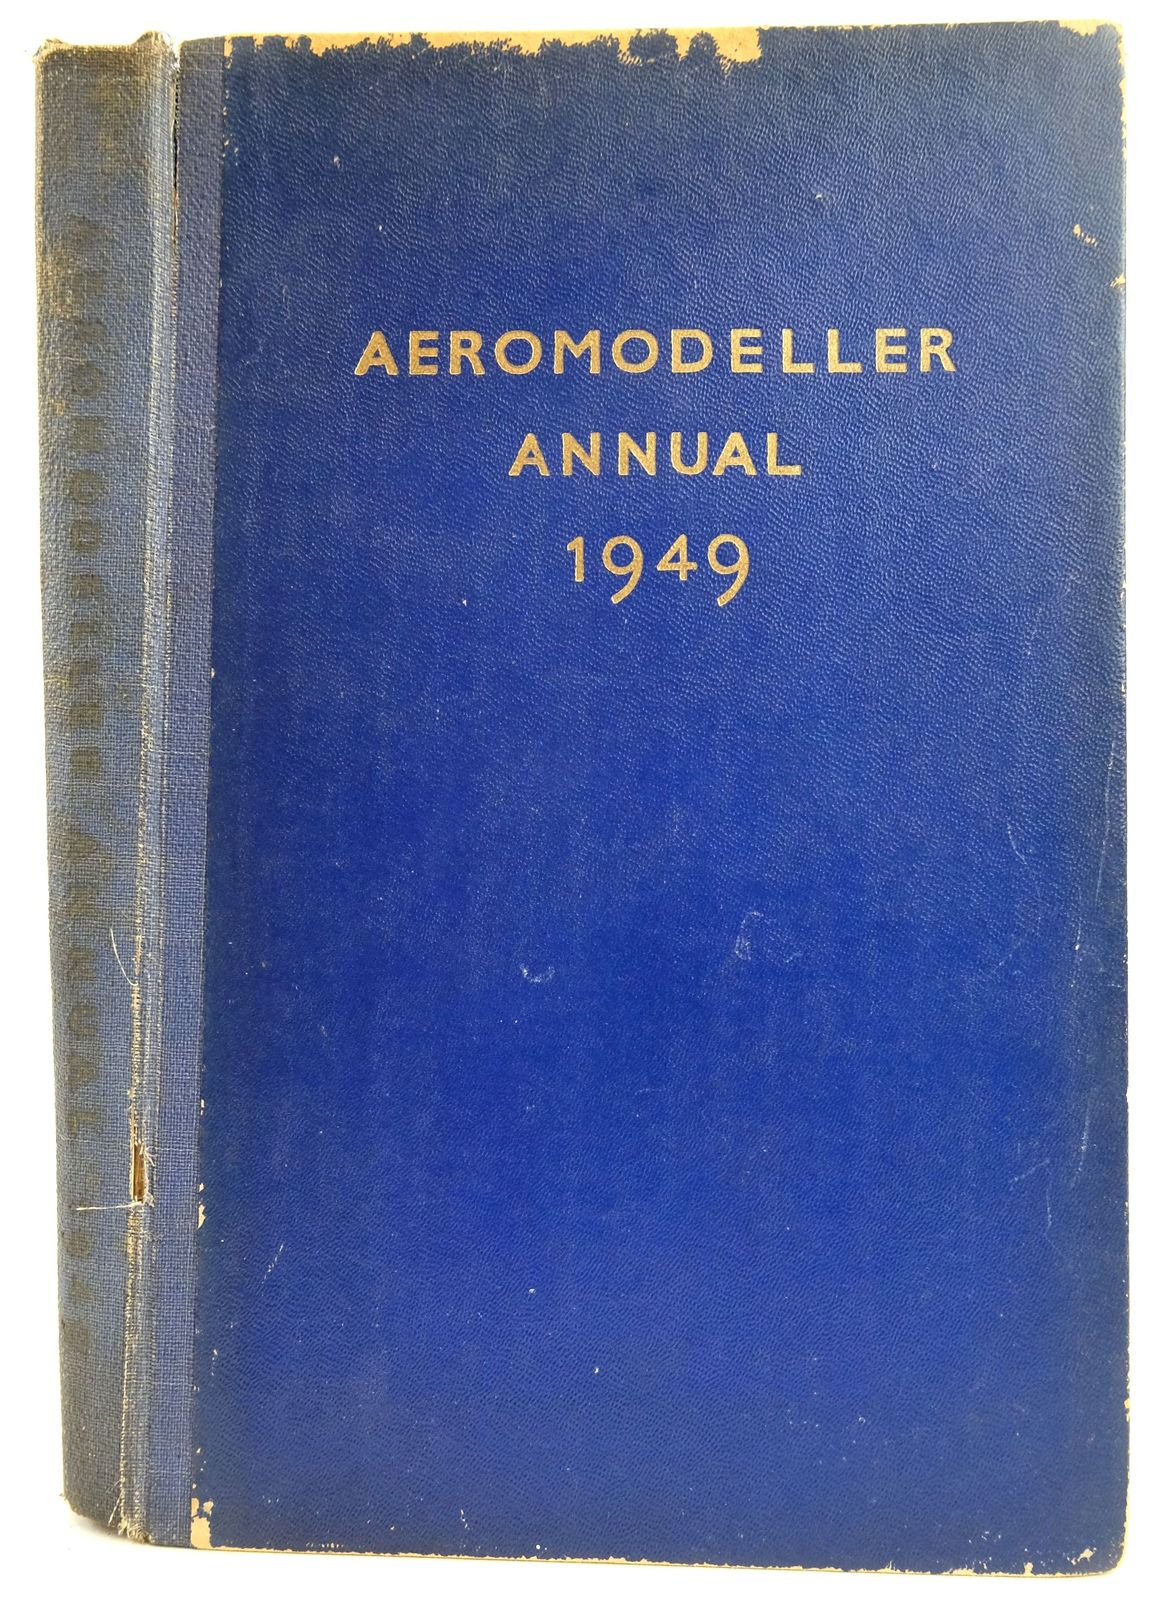 Photo of AEROMODELLER ANNUAL 1949 written by Laidlaw-Dickson, D.J. Russell, D.A. published by Model Aeronautical Press Limited (STOCK CODE: 1820123)  for sale by Stella & Rose's Books